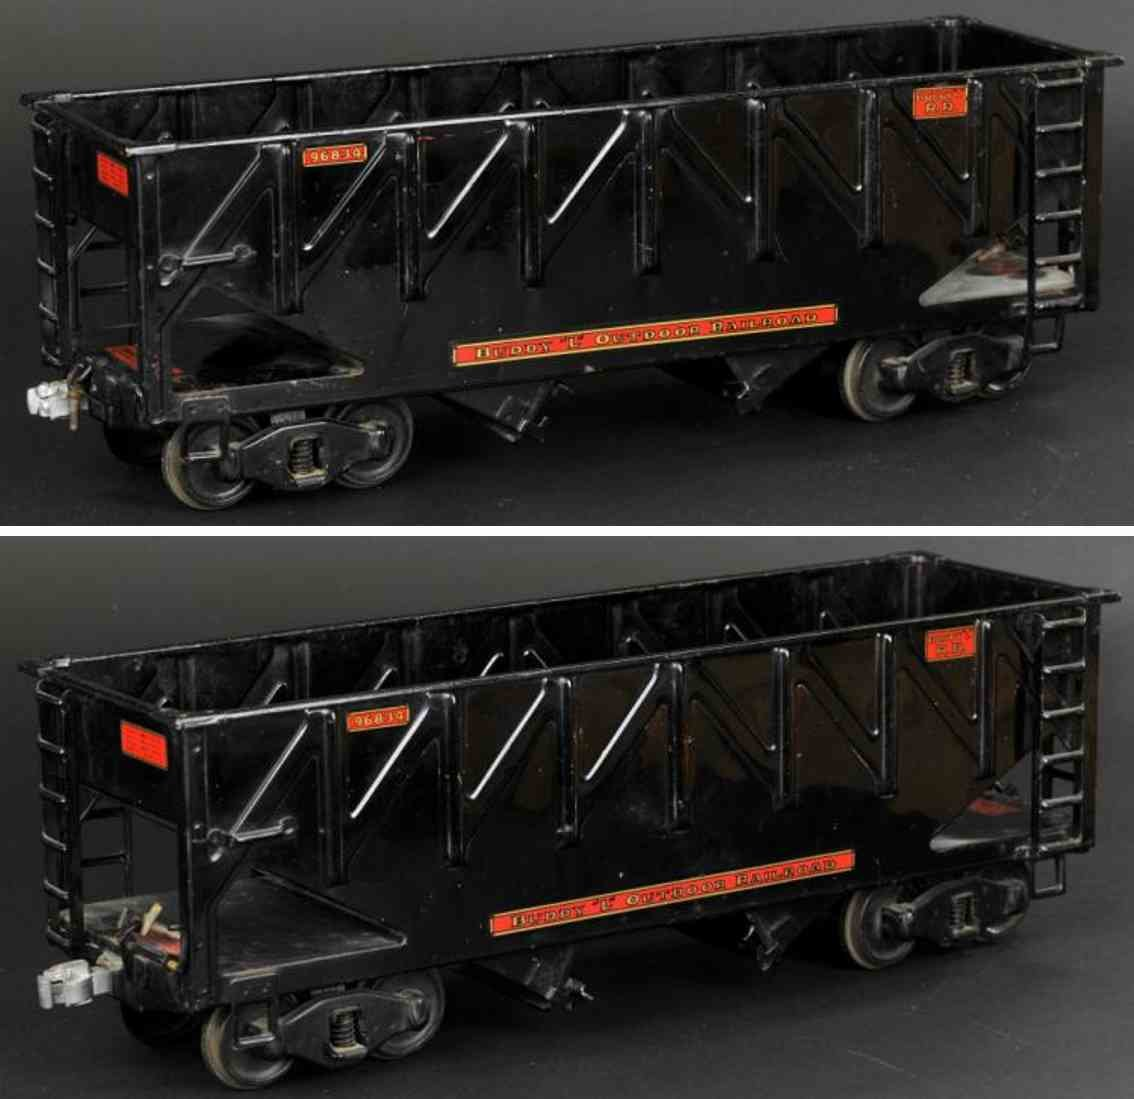 Rapid Discharge Rail Cars Vibrator